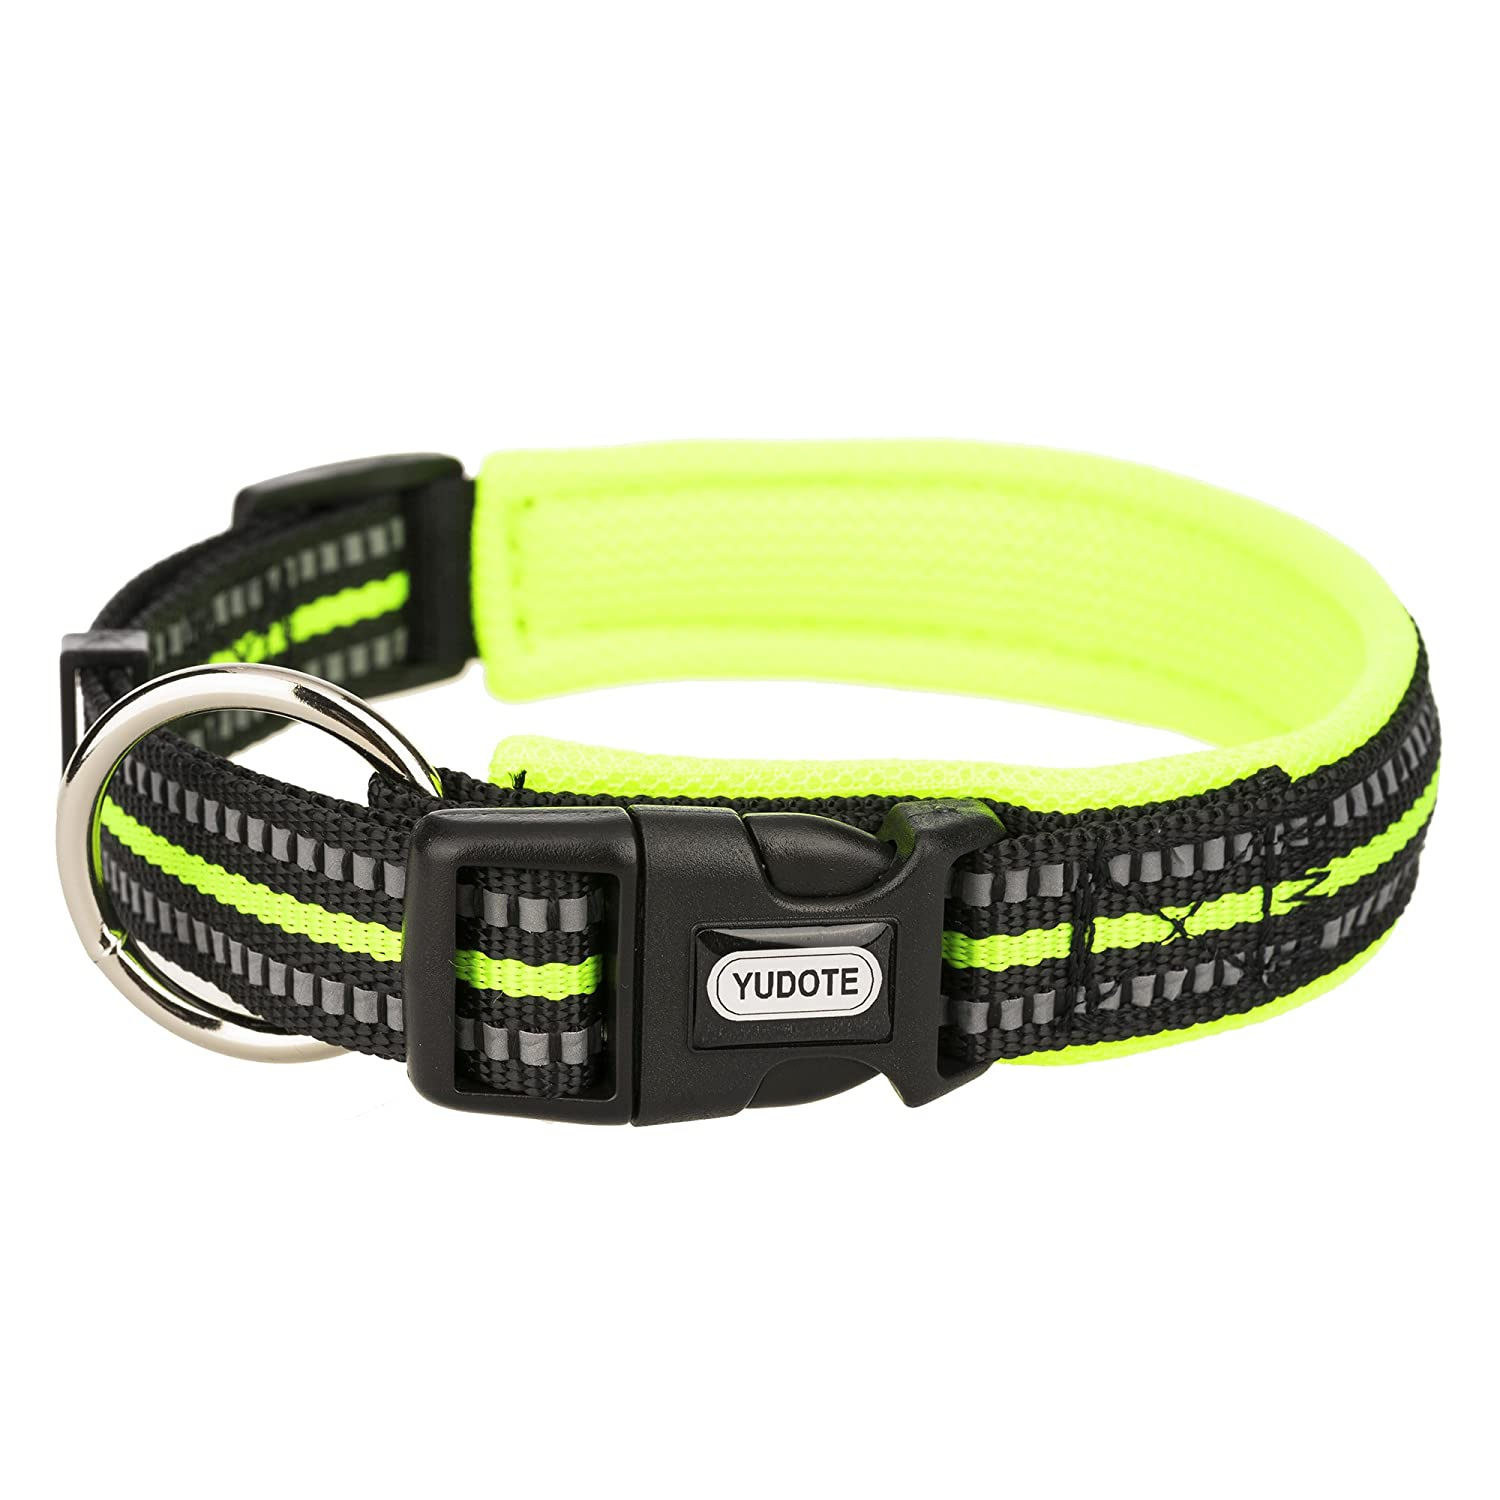 Shiny green Medium(Neck 13.7\ Shiny green Medium(Neck 13.7\ YUDOTE 3M Reflective Dog Collars, Nylon Collar Soft Mesh Padded 4 colors Adjustable Seatbelt Pets Outdoor & Night Safety Green Medium